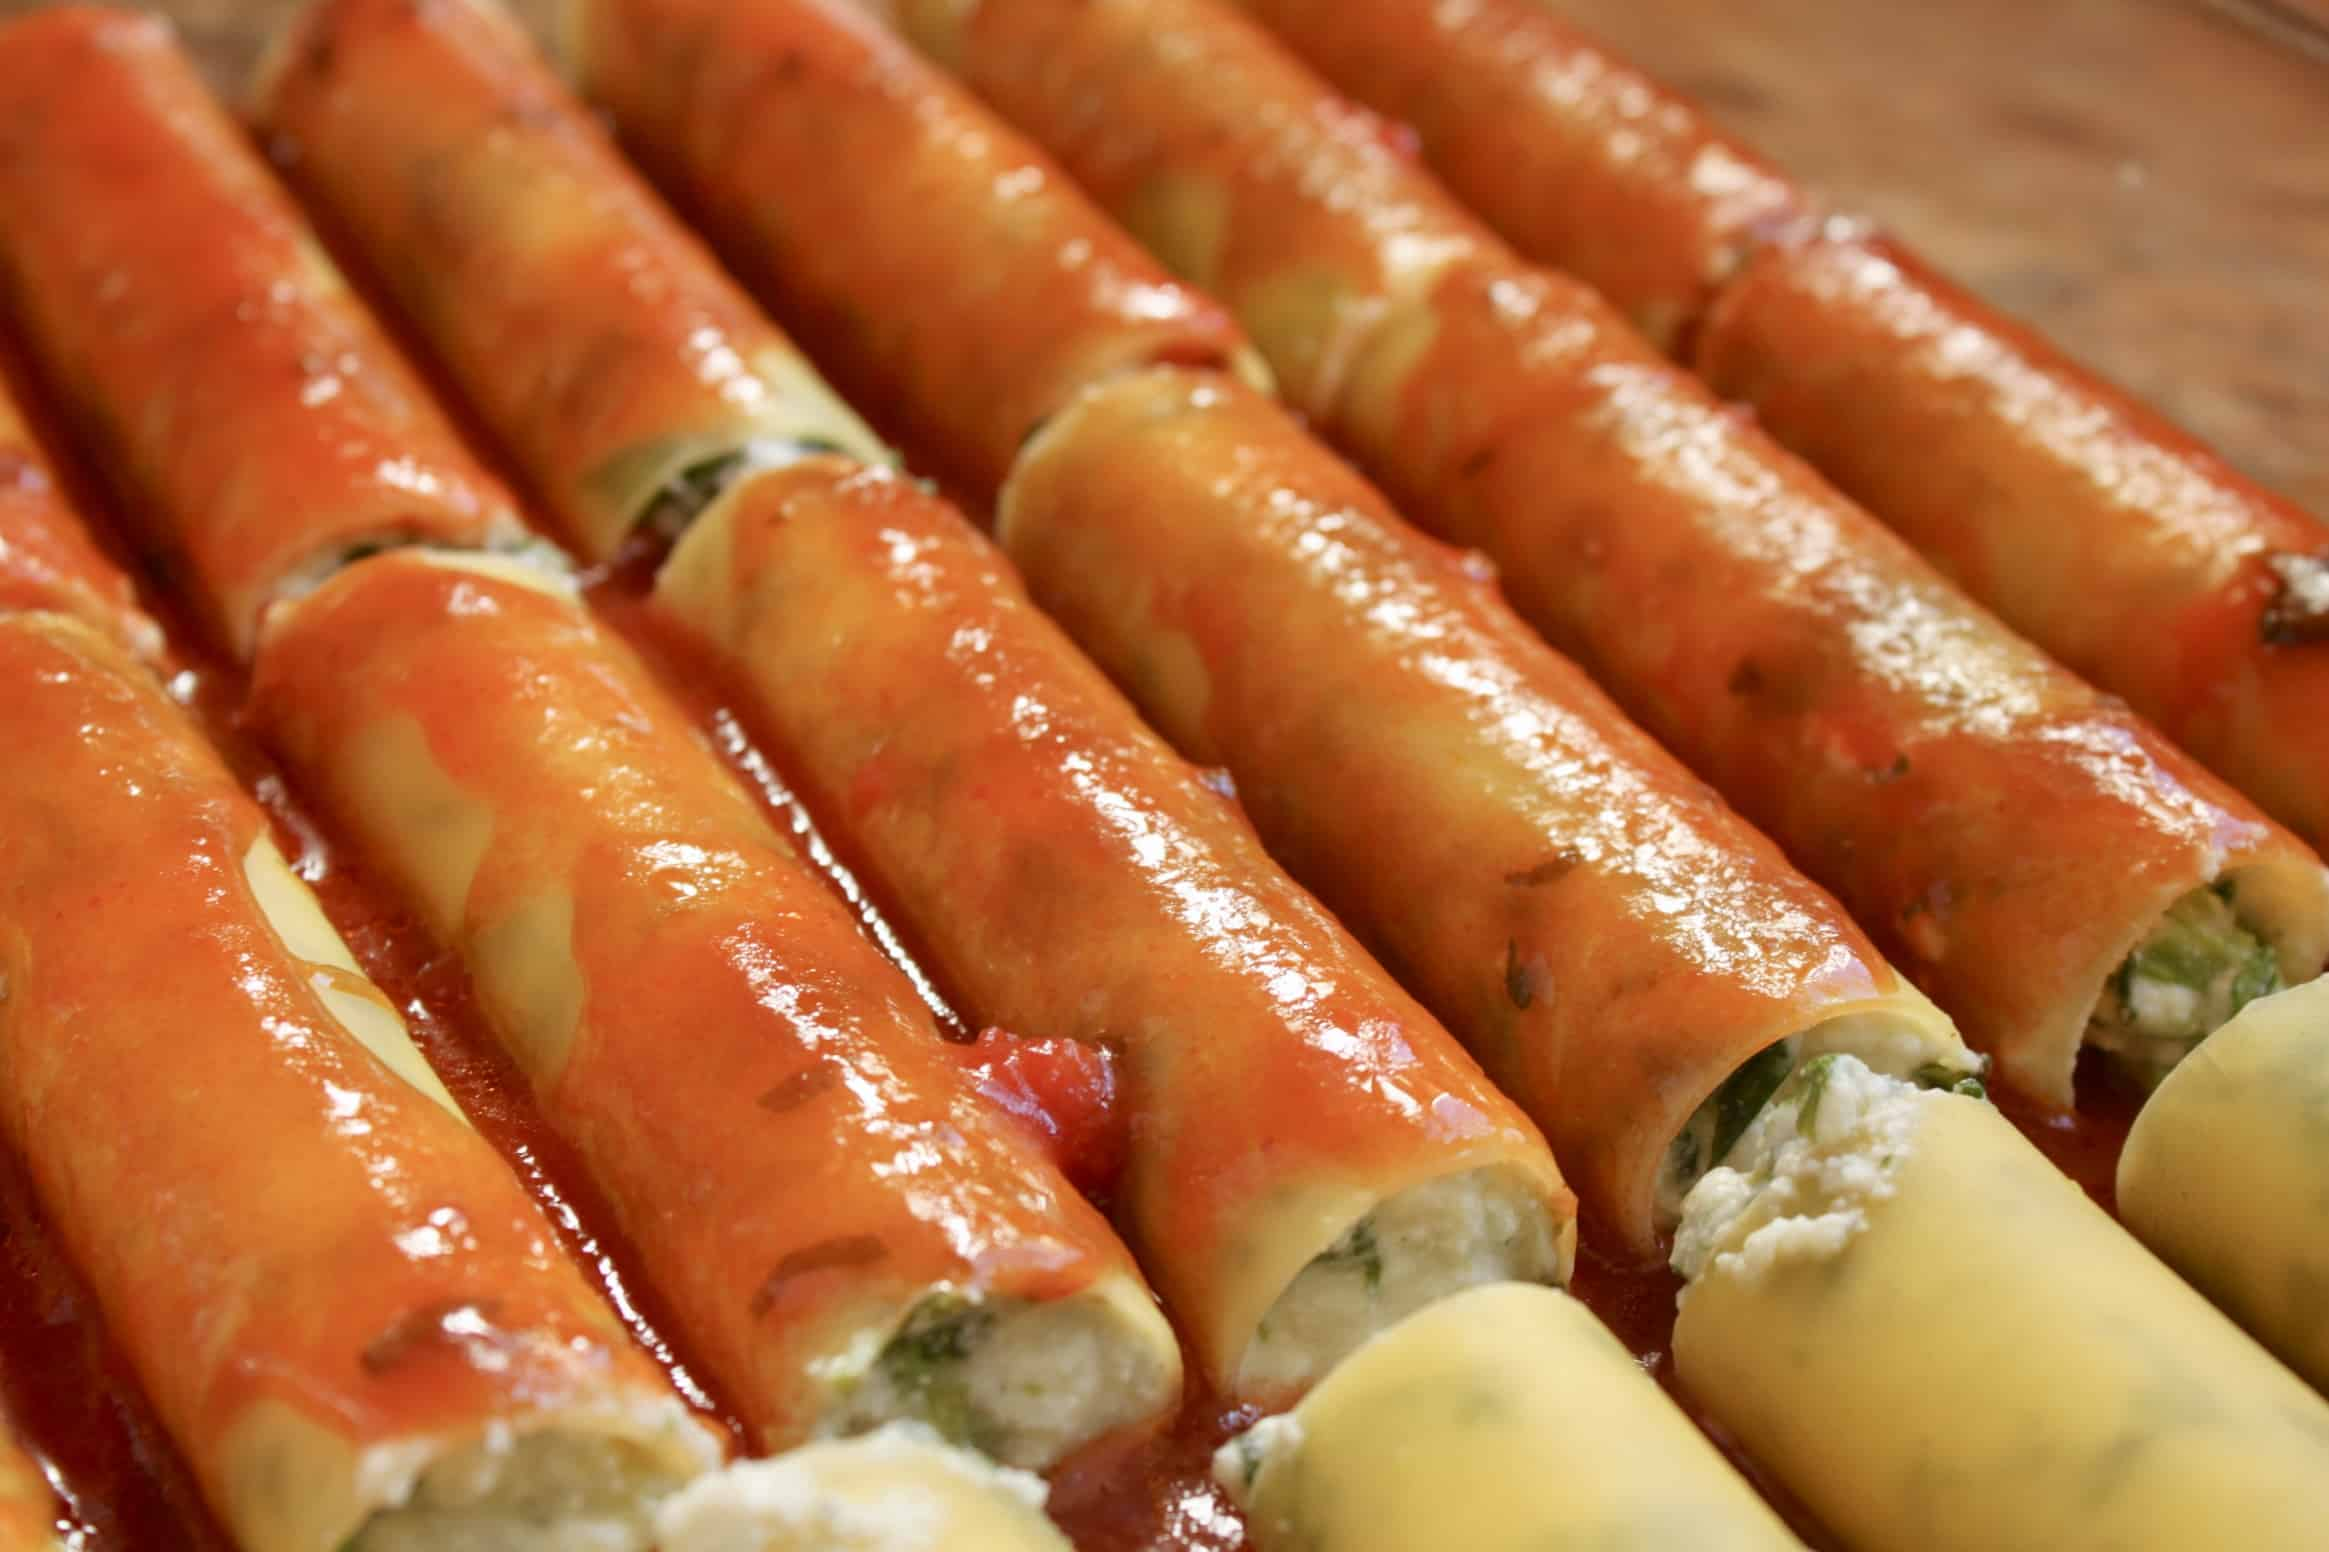 raw stuffed manicotti in a tray covered with sauce